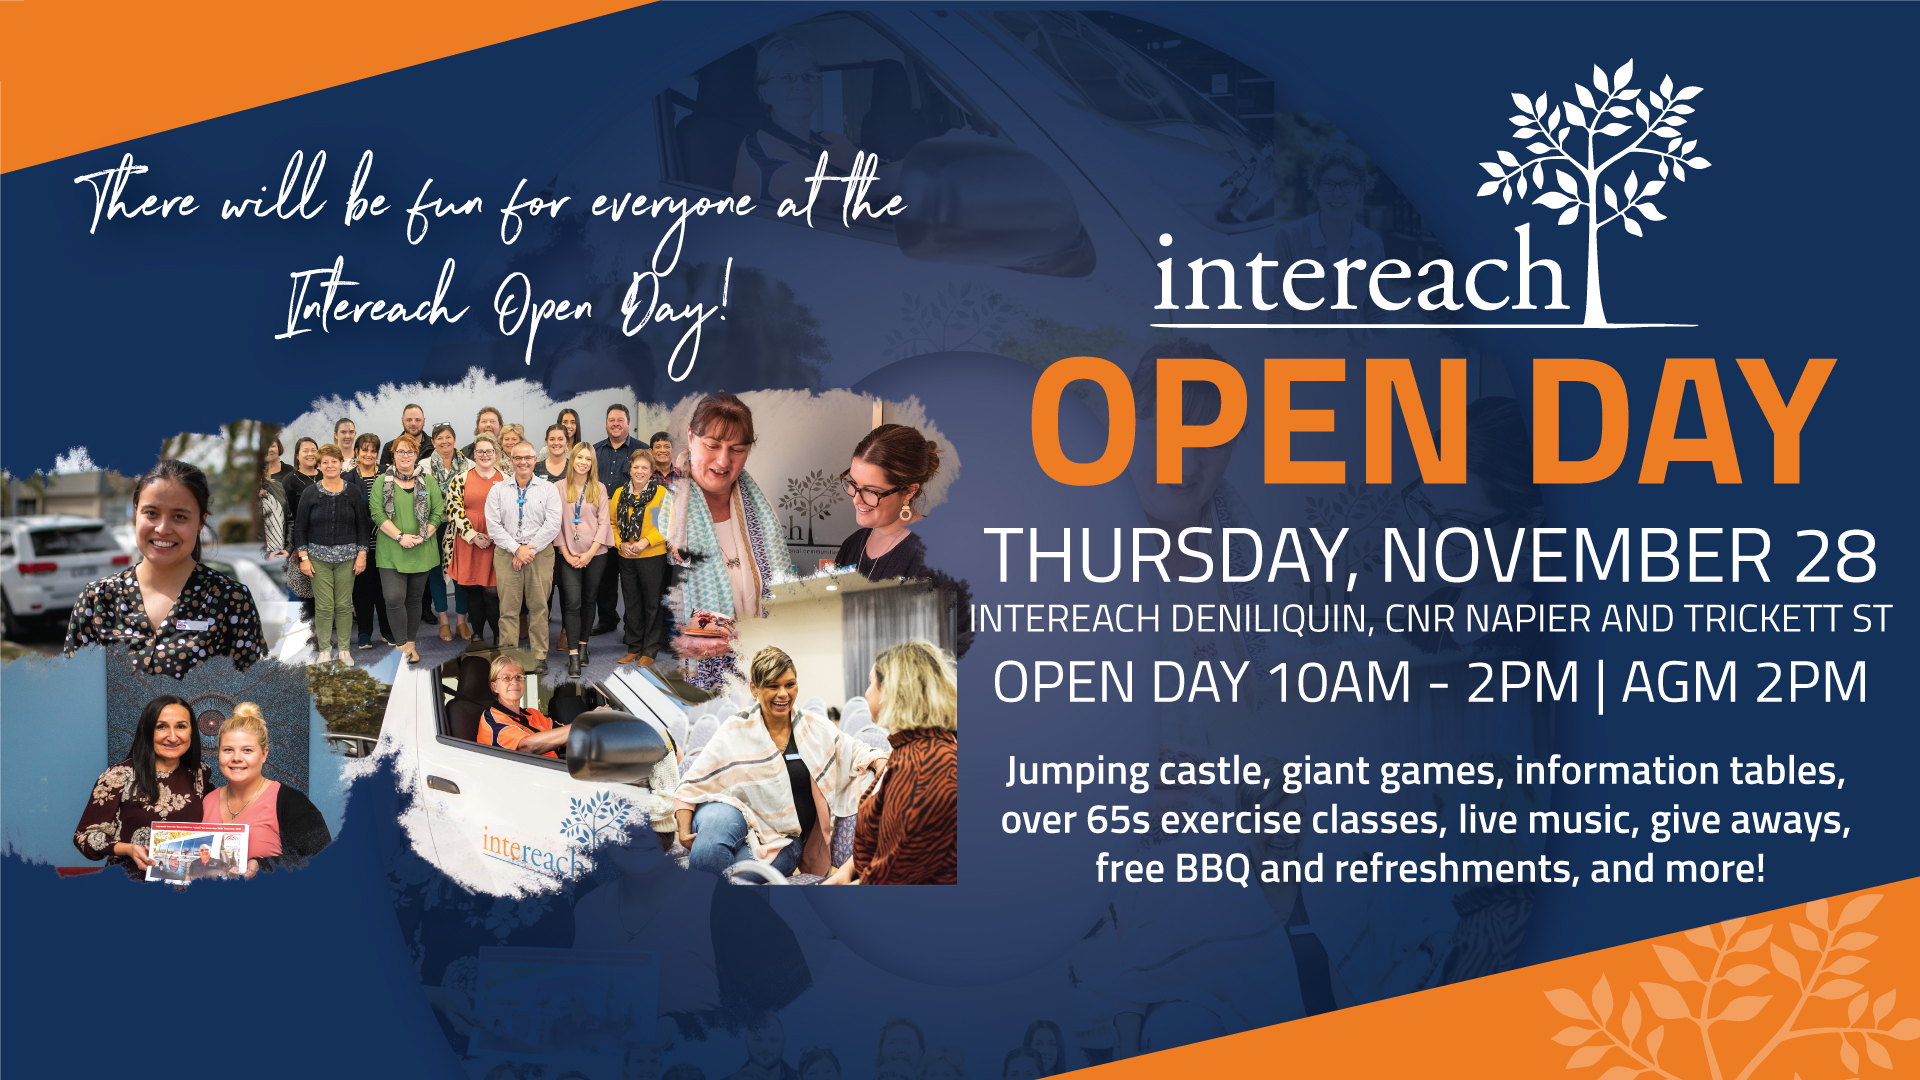 'Intereach Open Day' poster